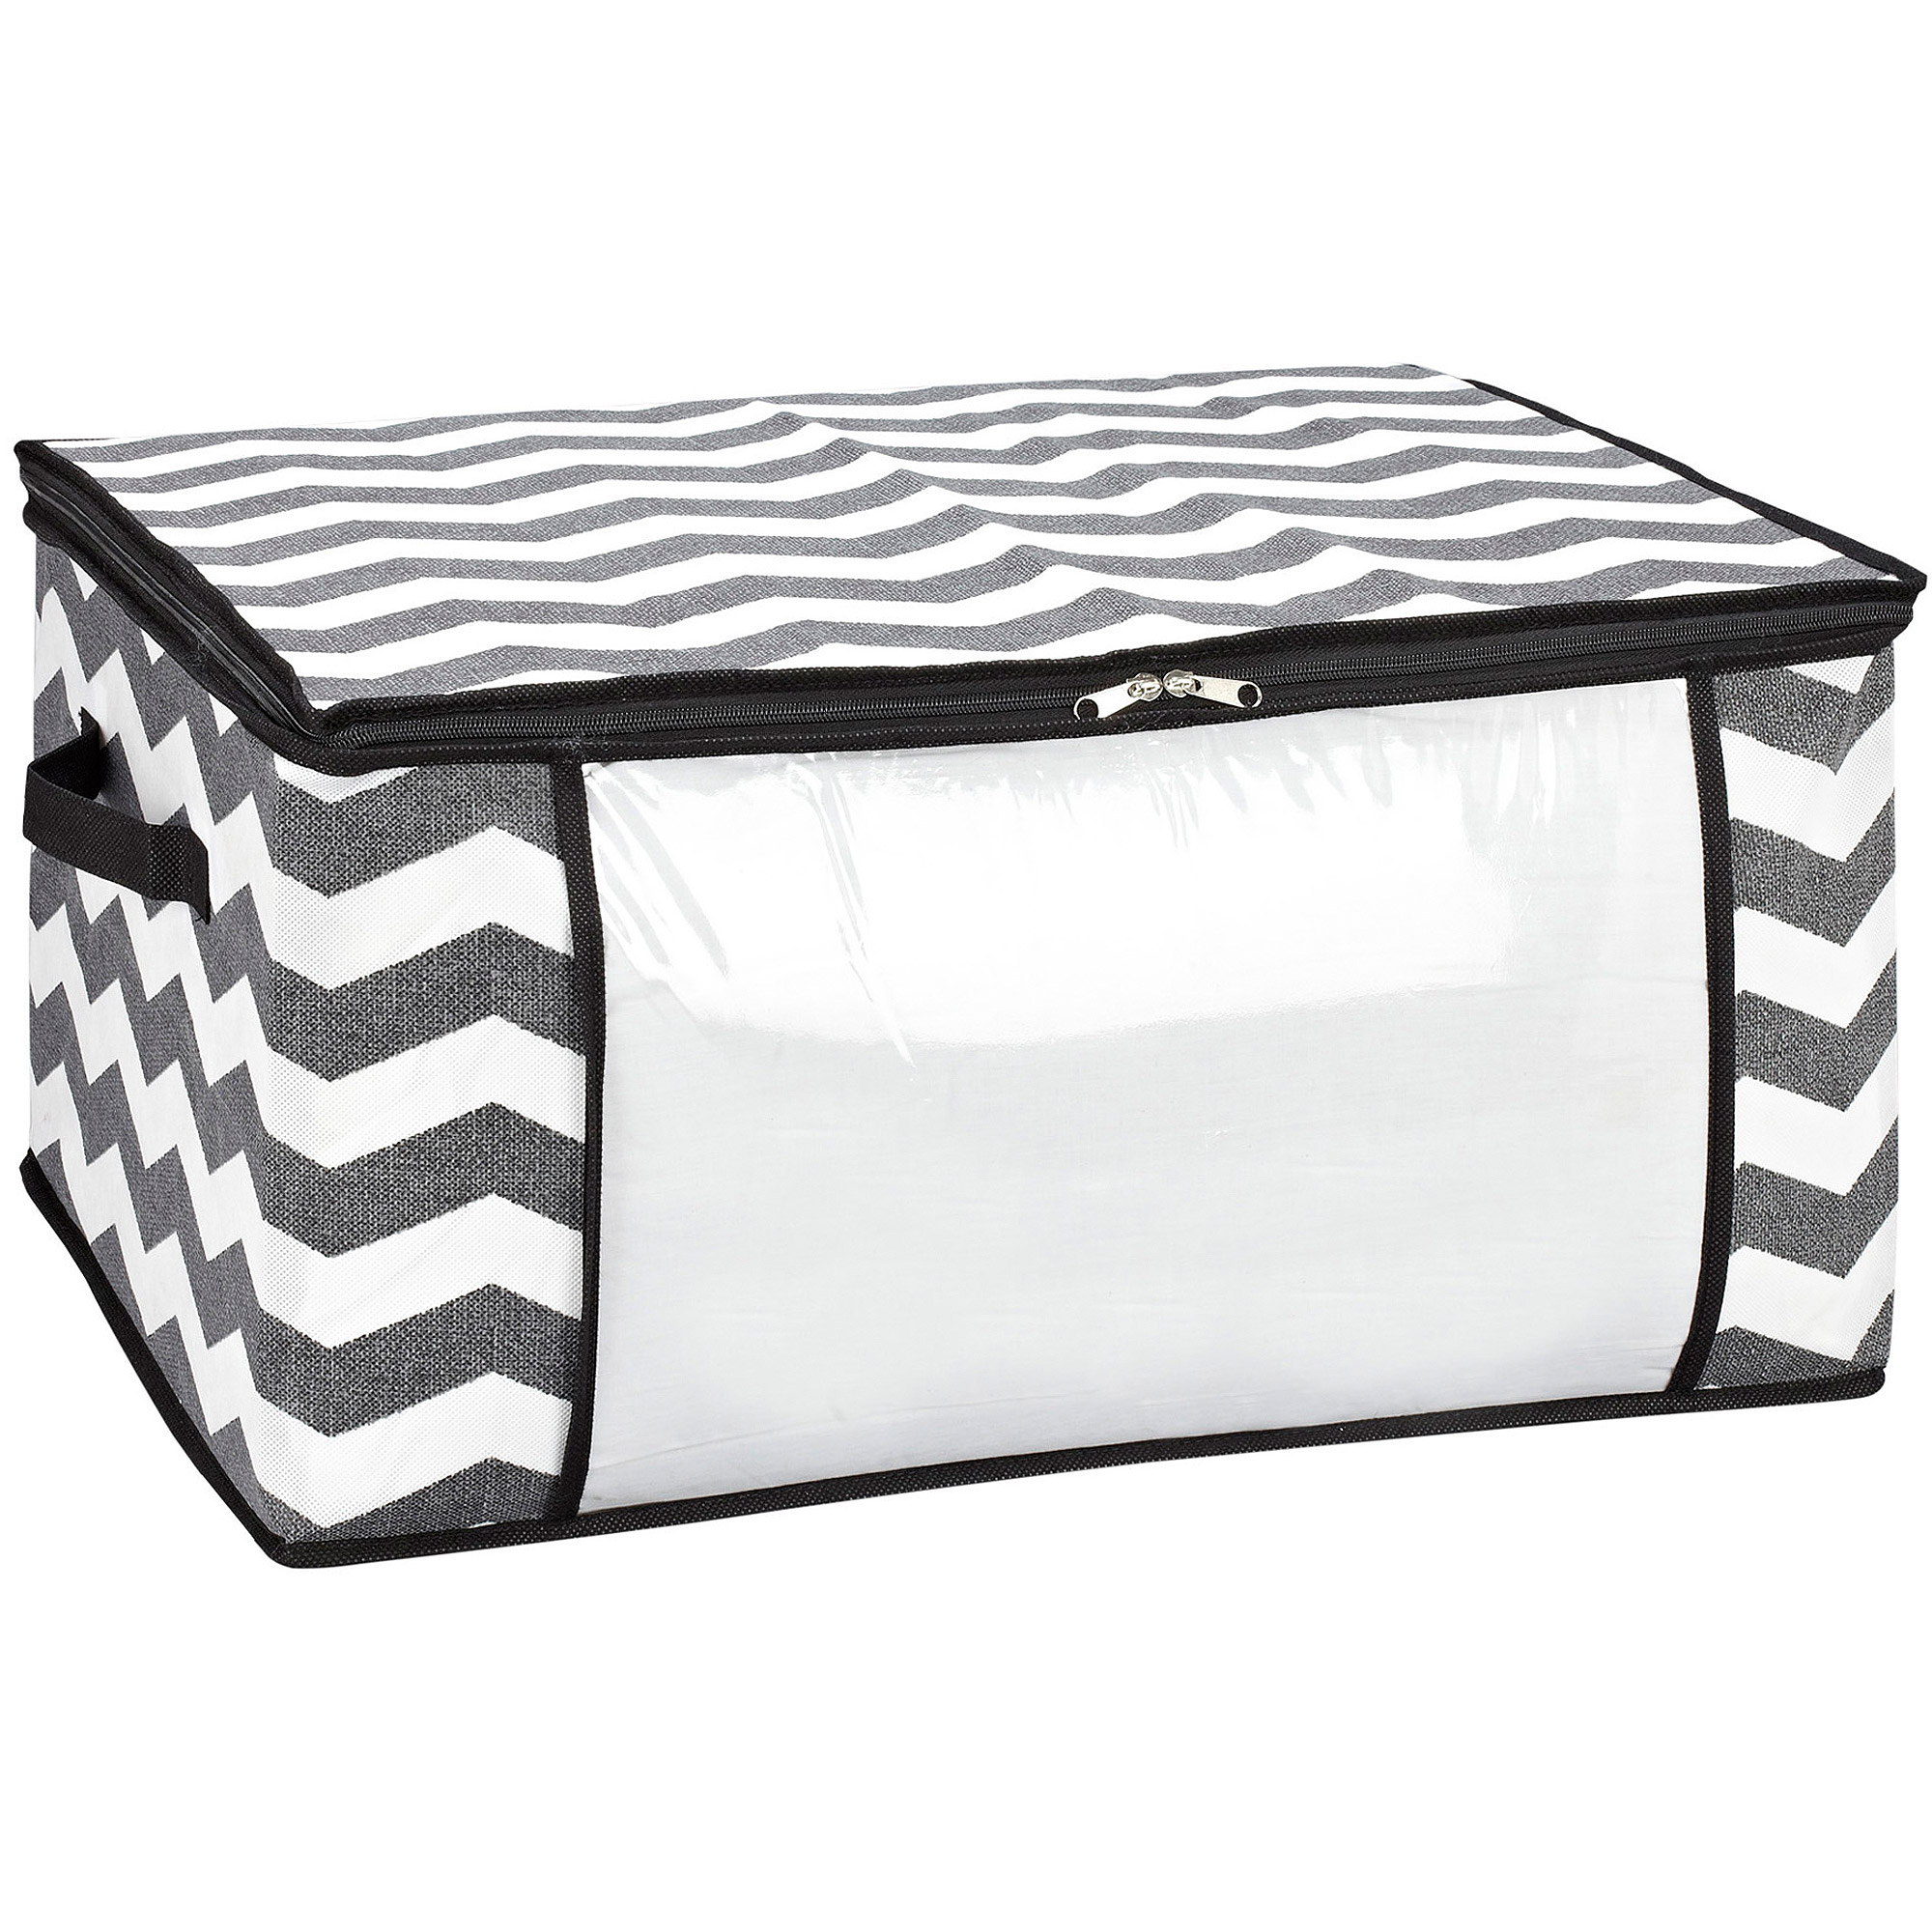 Charmant HouseCandie Jumbo Blanket Storage Bag   Walmart.com